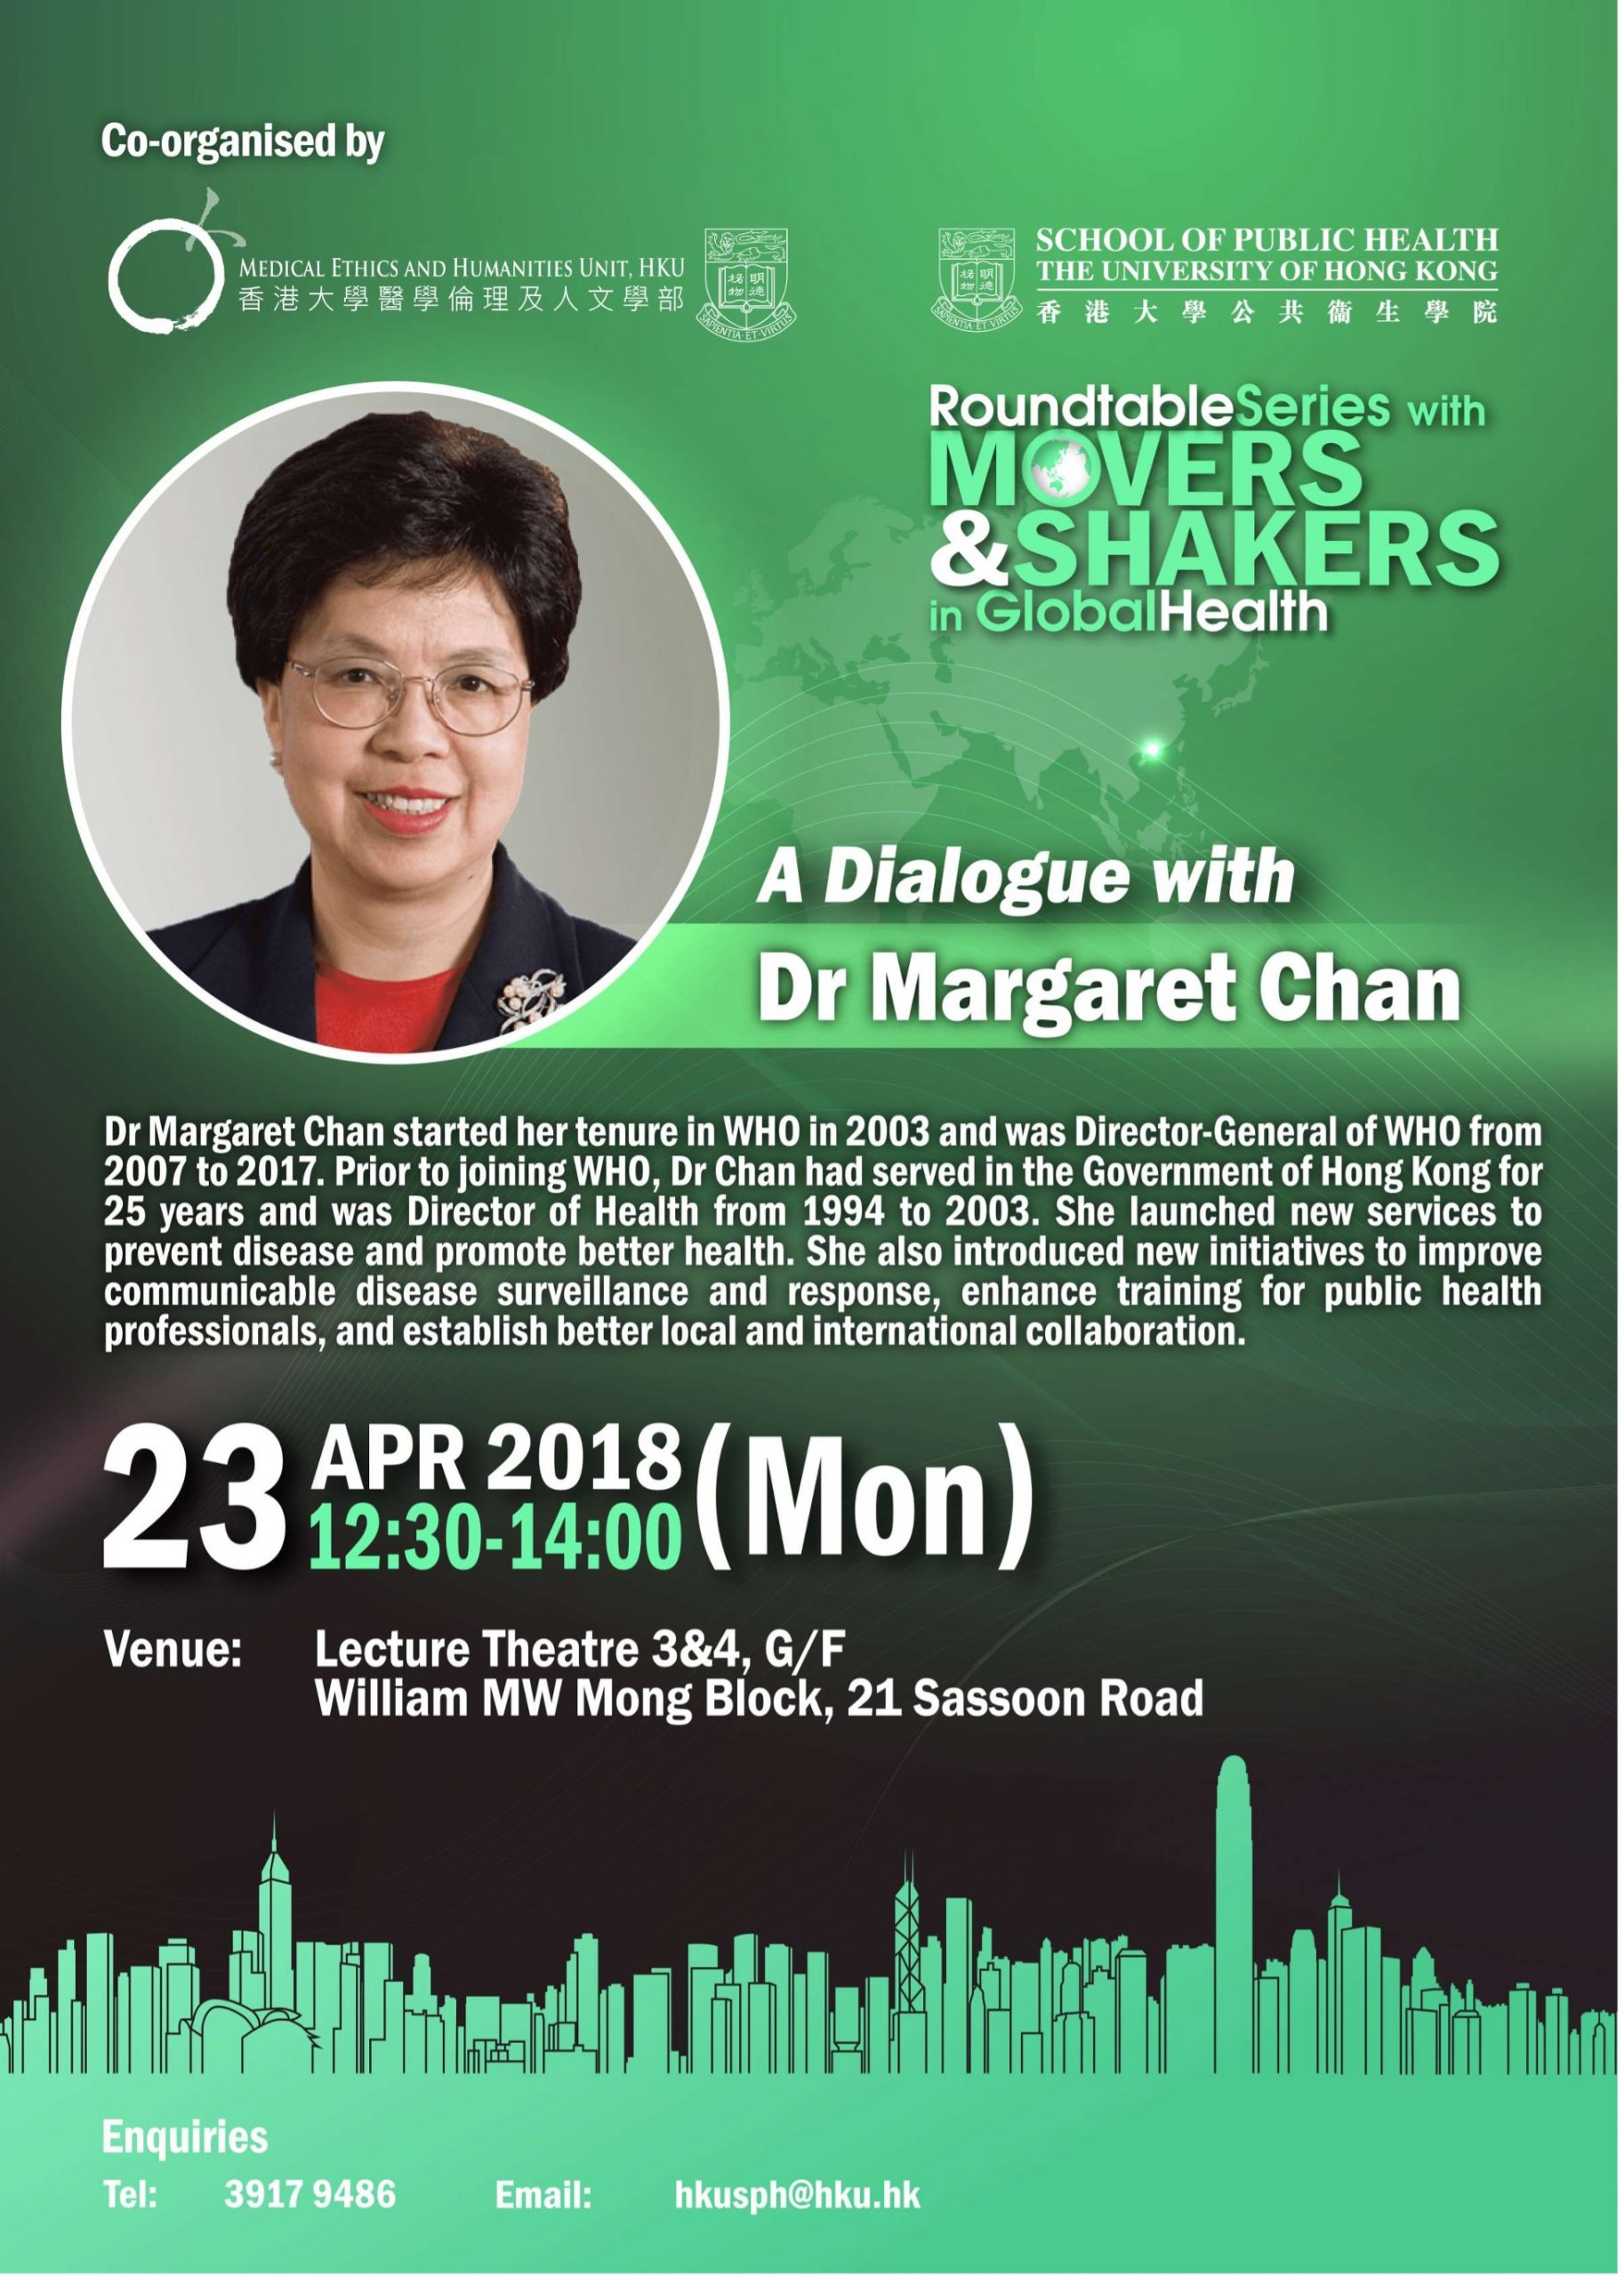 A Dialogue with Dr Margaret Chan